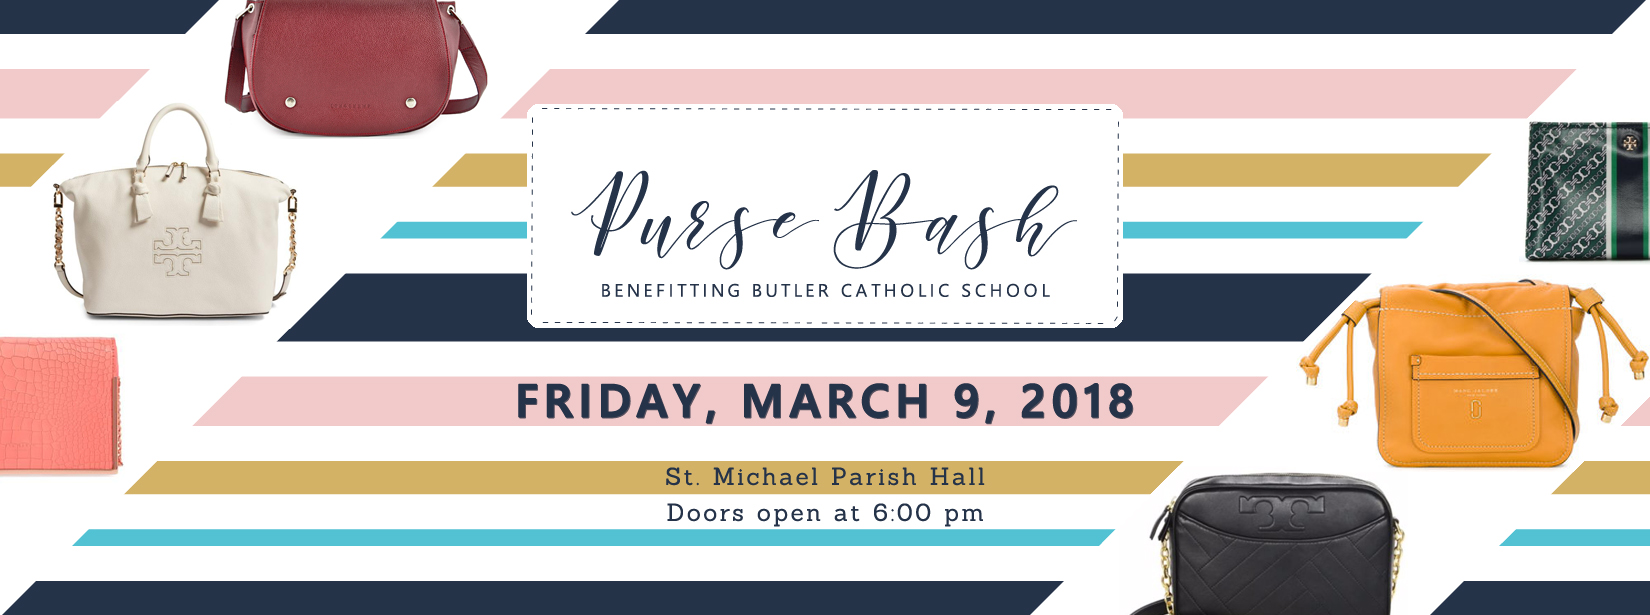 Purse-Bash-BC-Slider